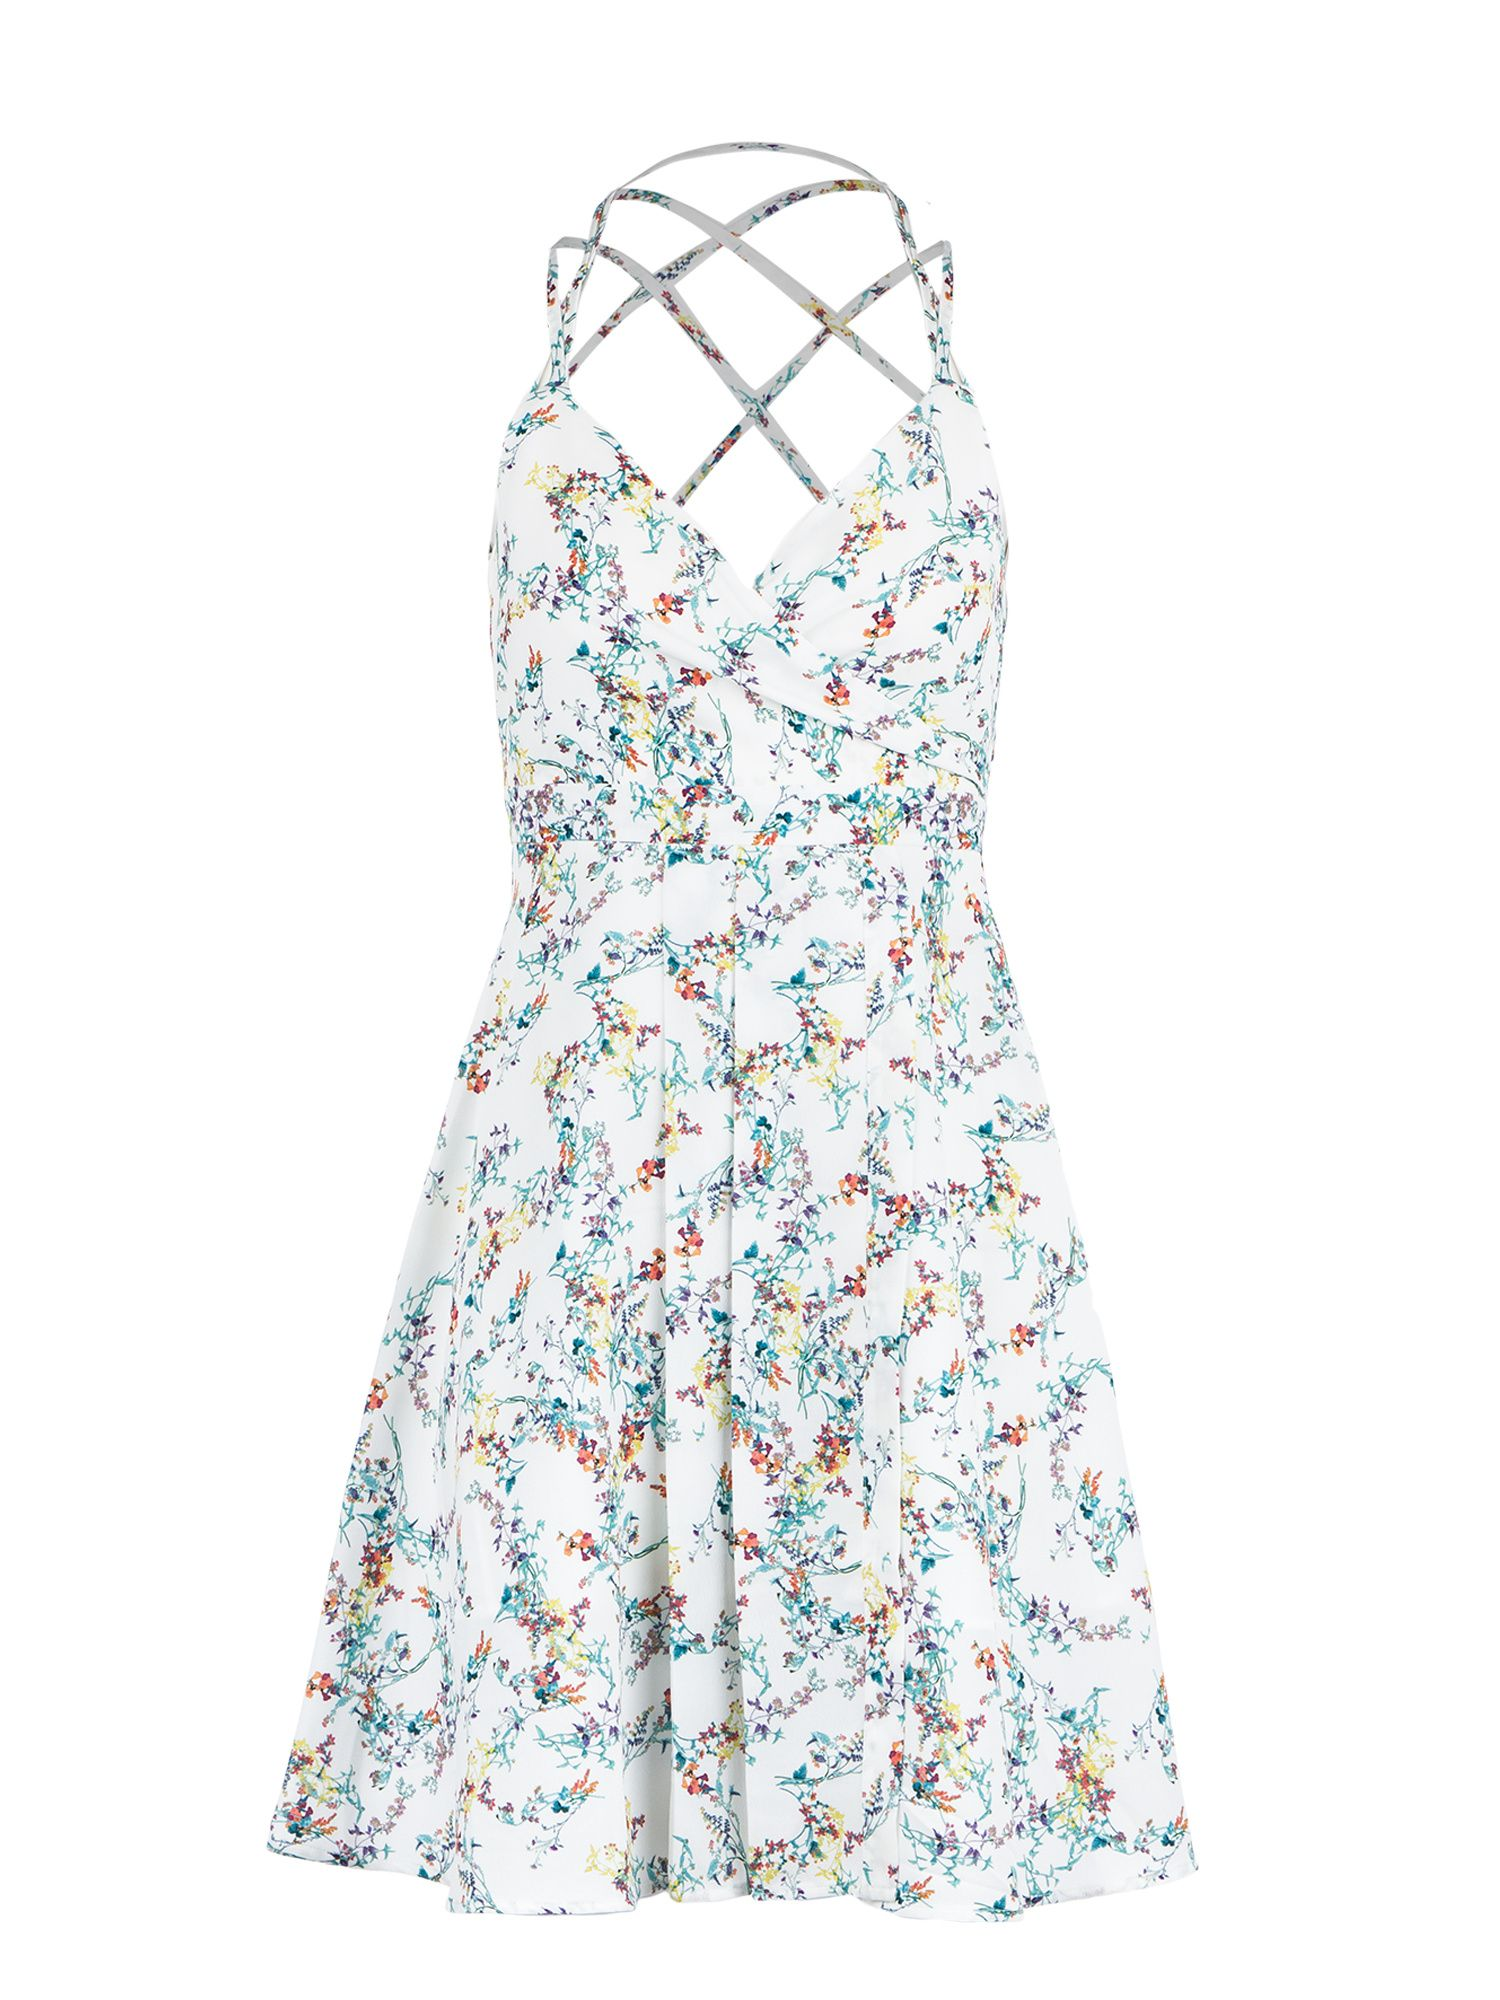 Morgan Criss Cross Straps Flower Print Dress, Off White